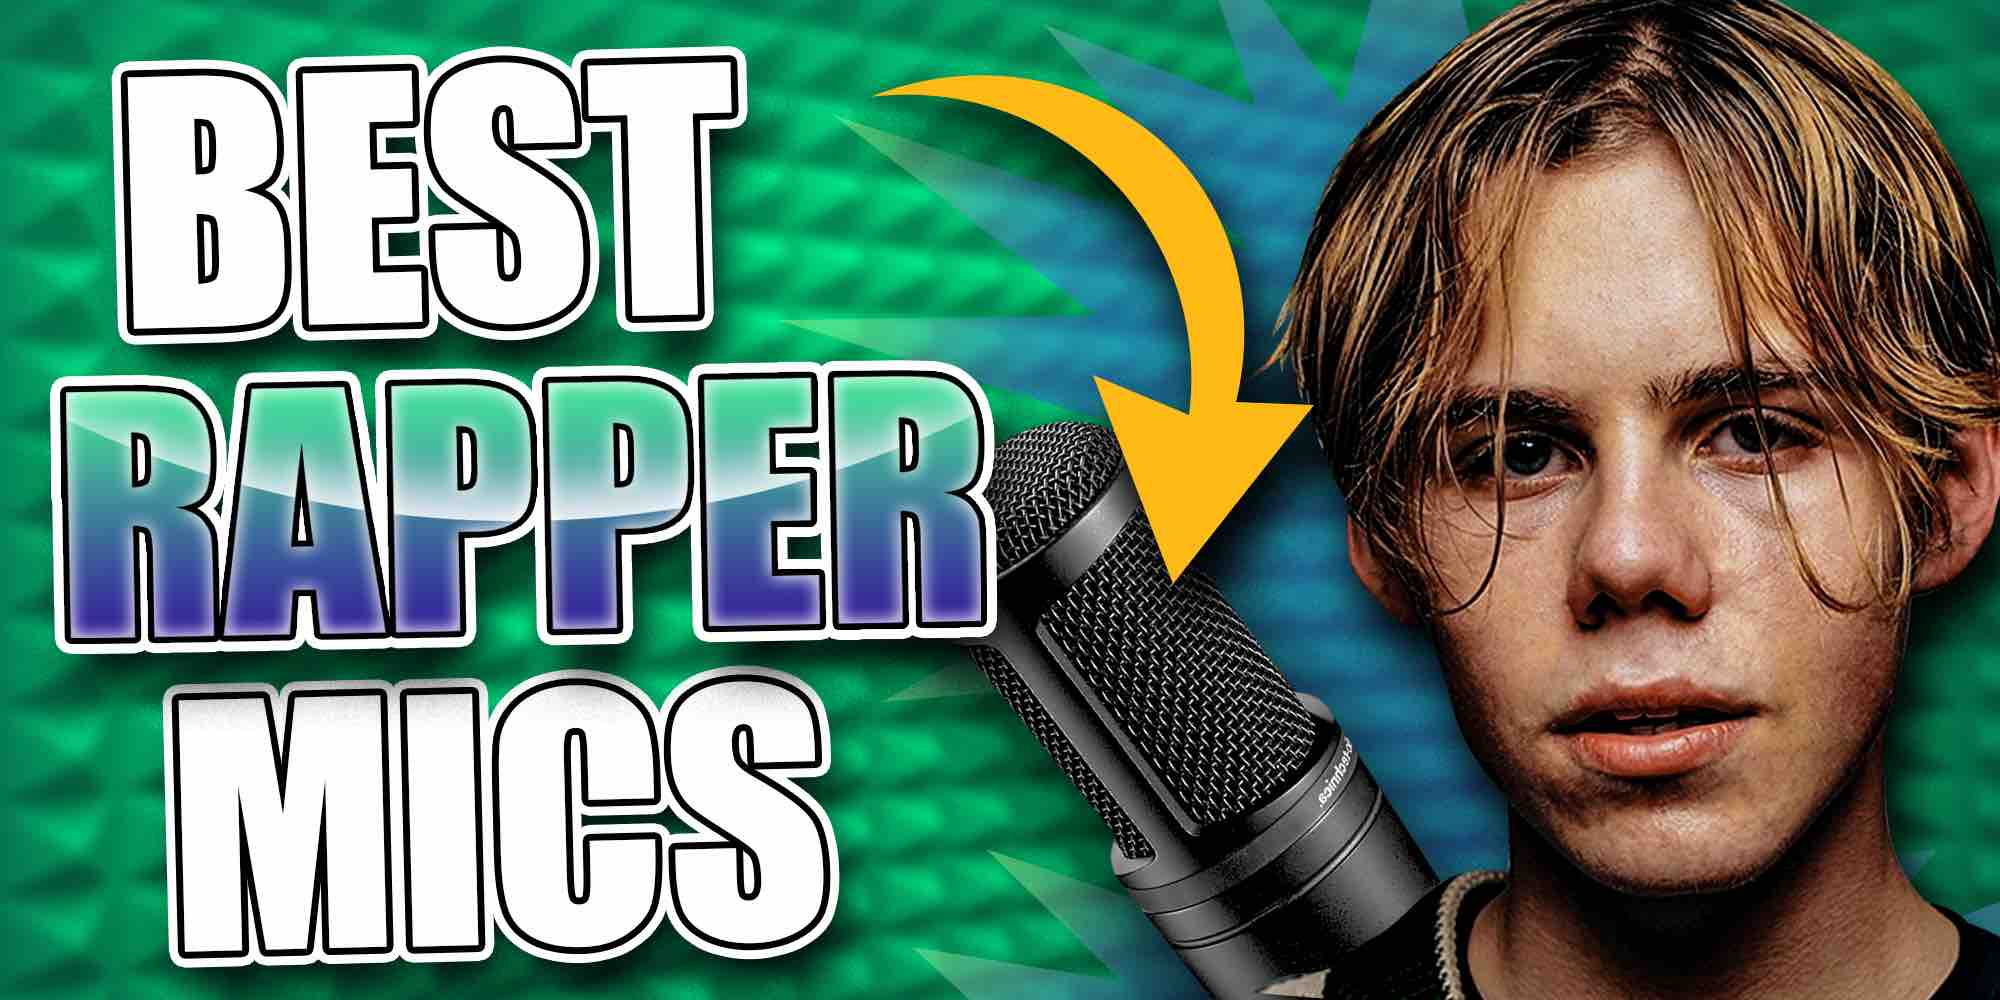 Best Cheap Microphones for Rapping (That Are Actually Good)